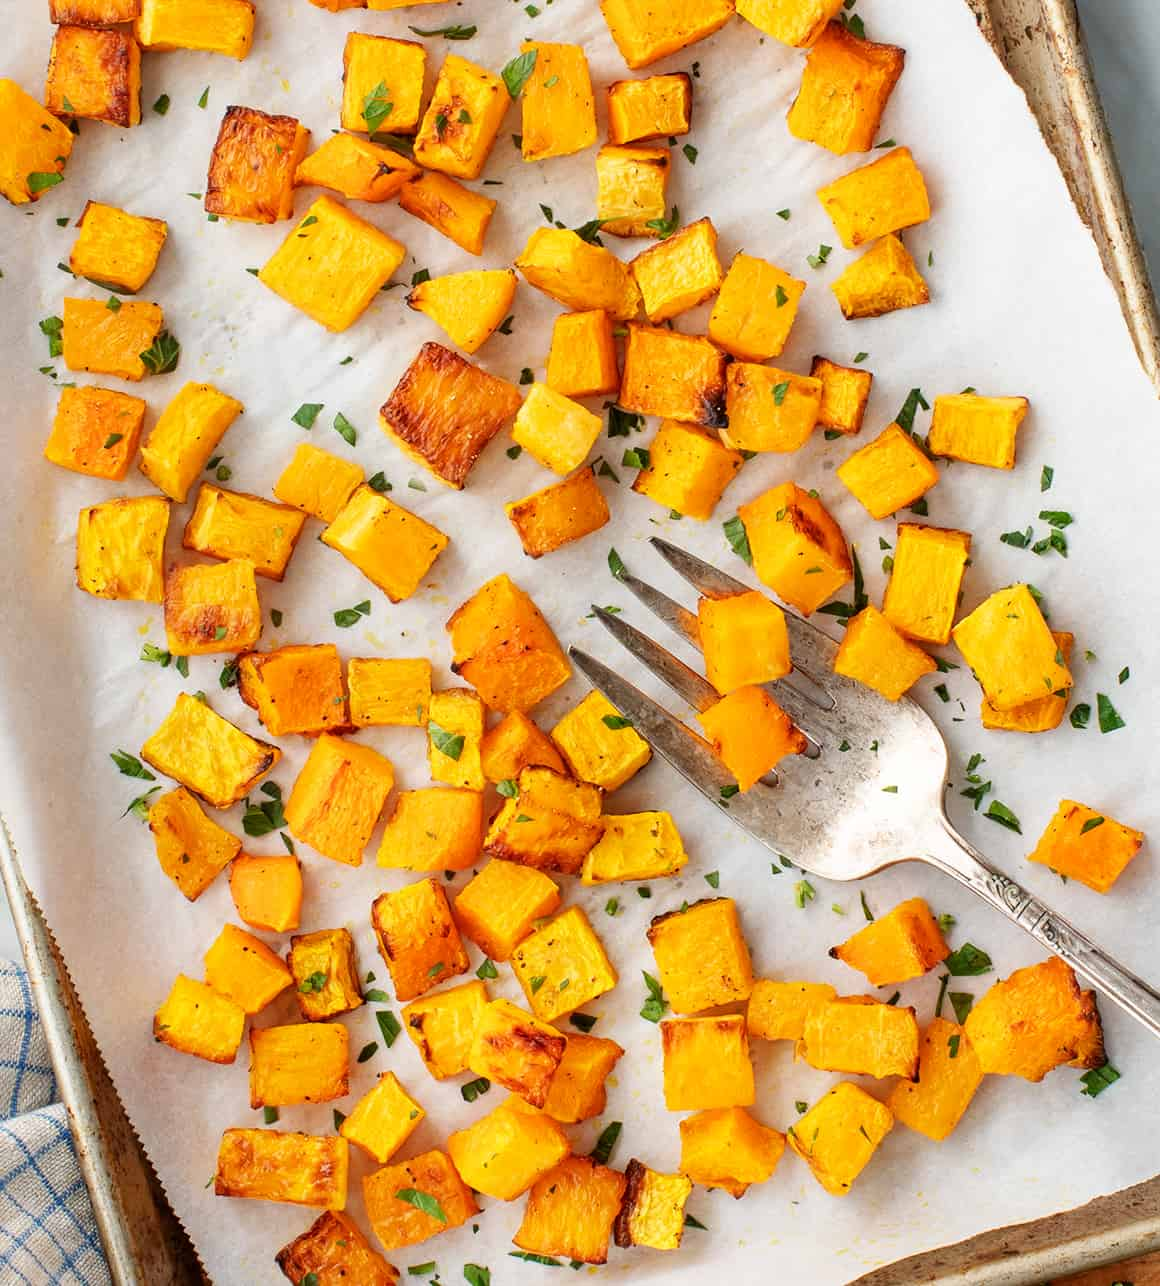 Roasted Butternut Squash Recipes By Love And Lemons